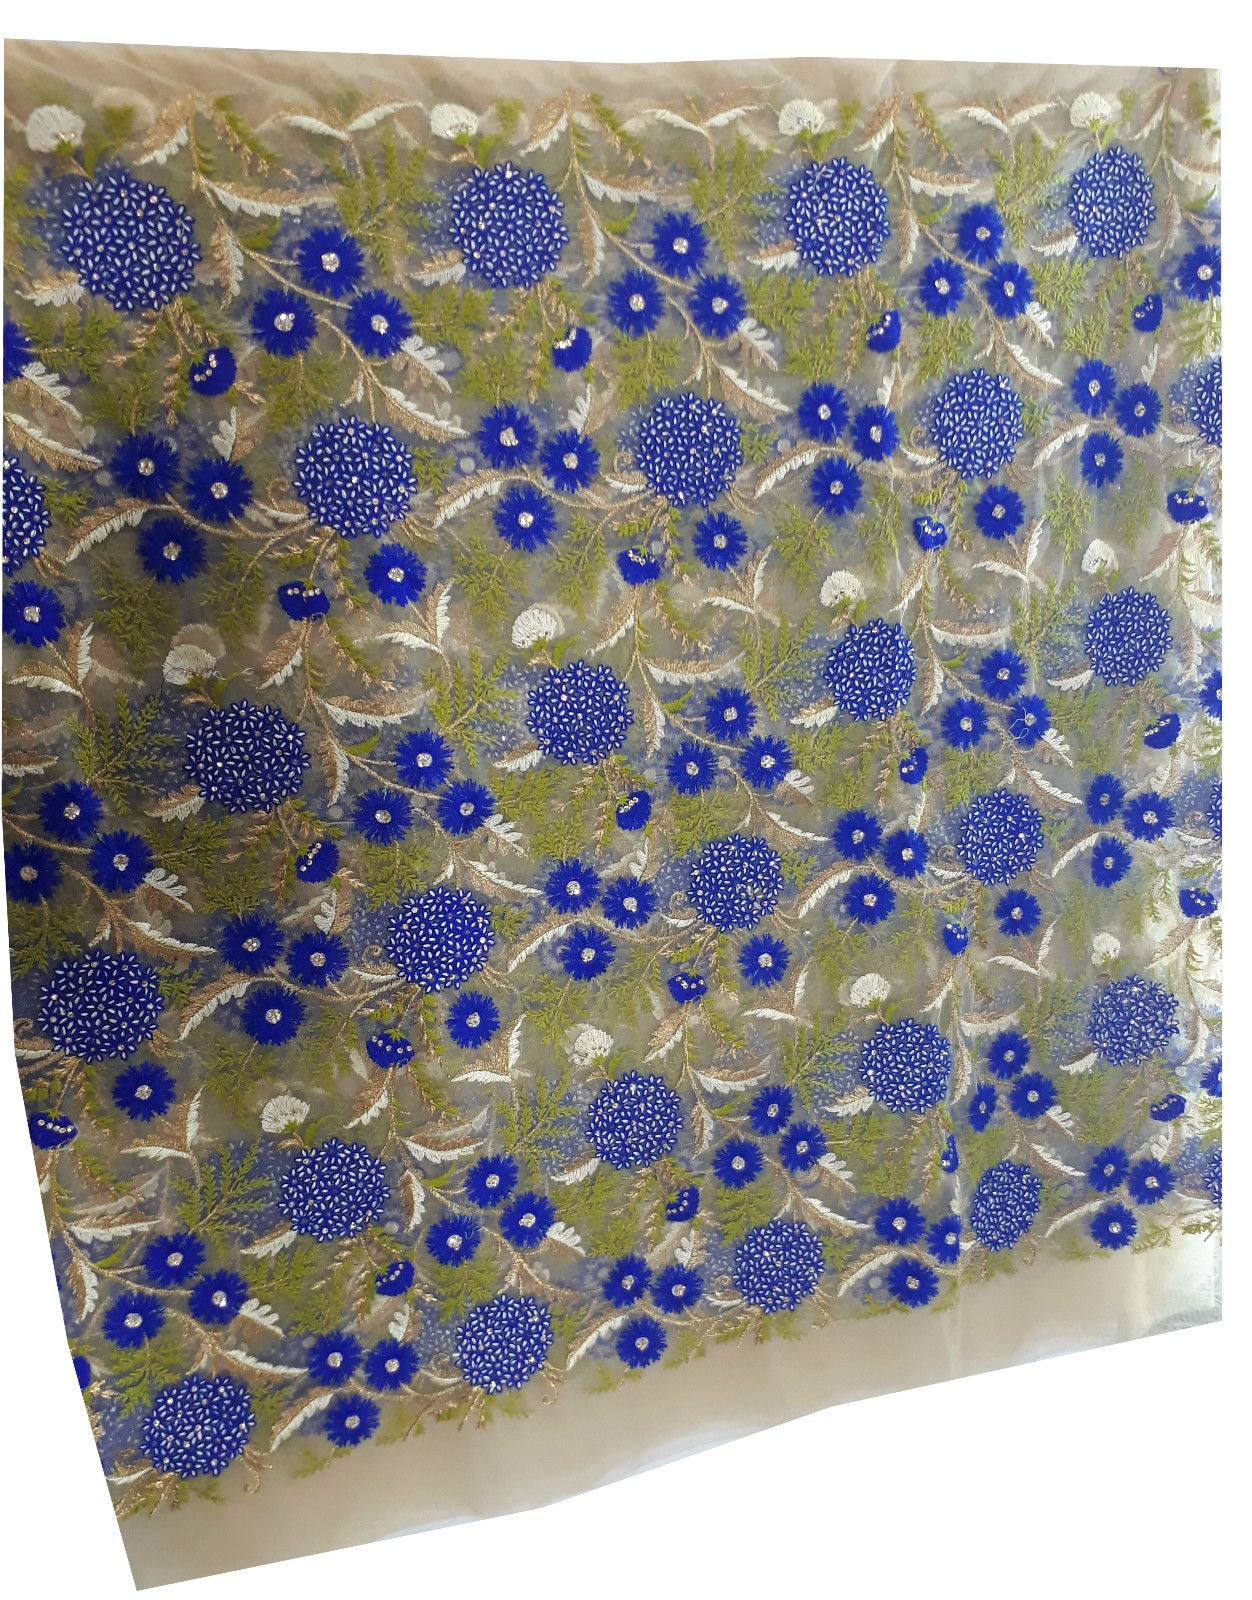 buy cloth material online embroidery material online shopping Net Beige, Green, Blue, Gold, White 42 inches Wide 1631